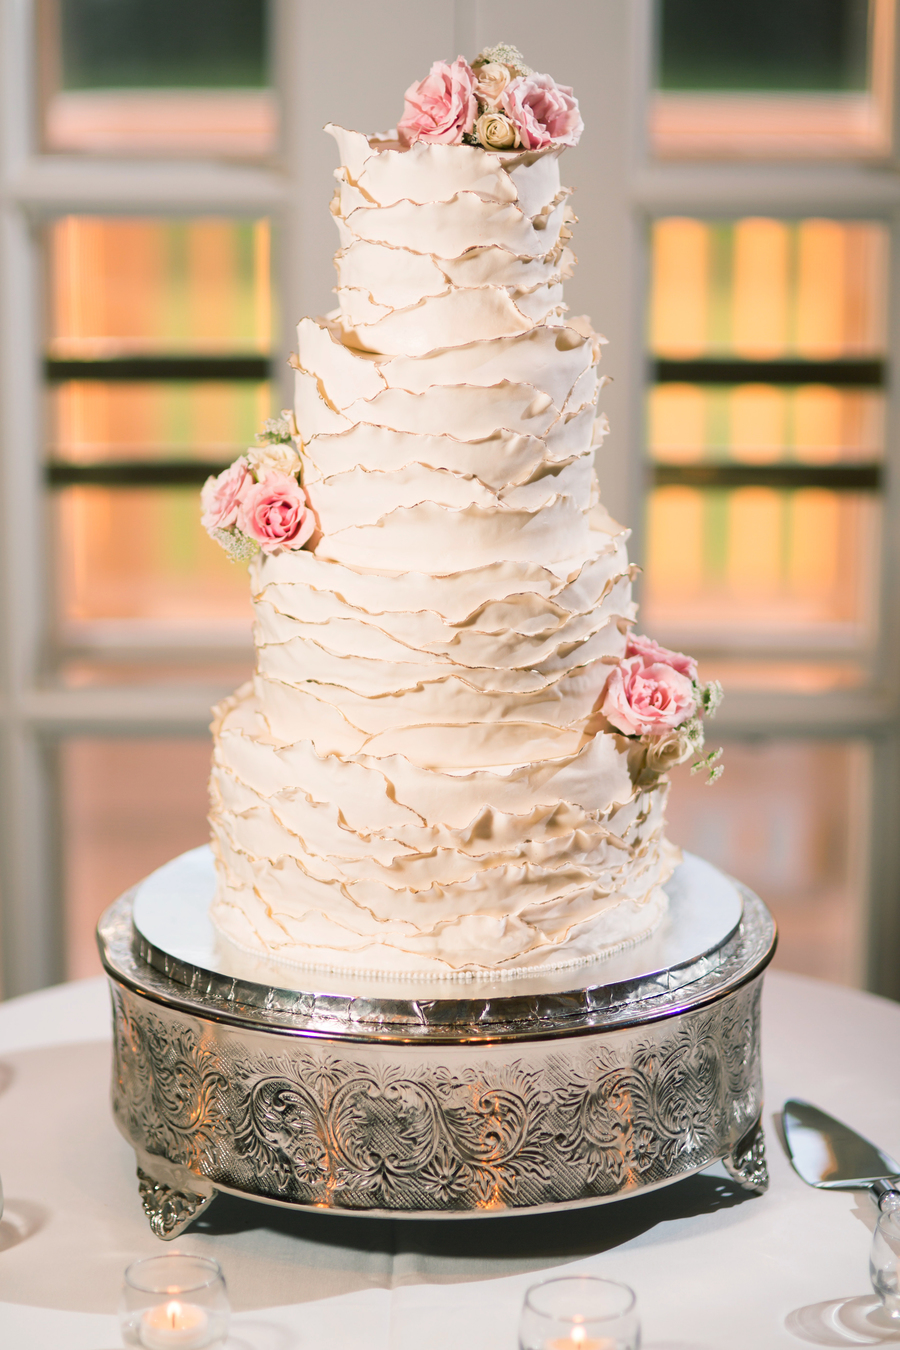 Hand Ruffled Wedding Cake With Gilded Edges